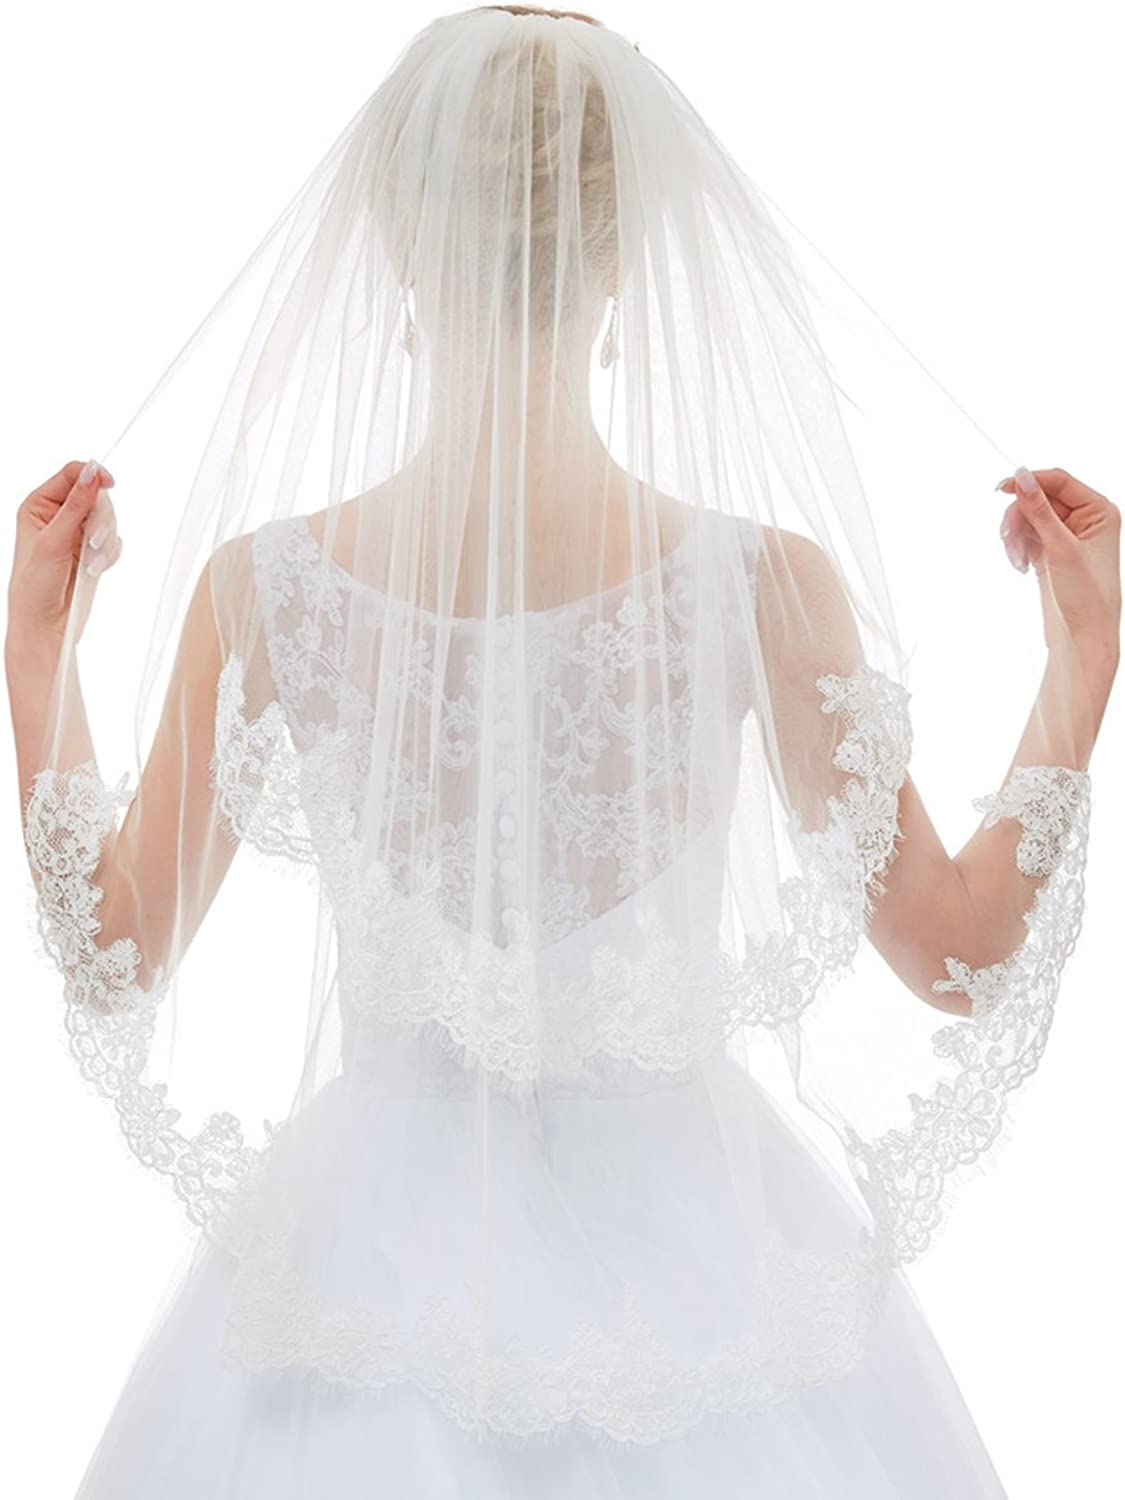 Greenia 2 Tier Lace Veil with Comb Short GNV11